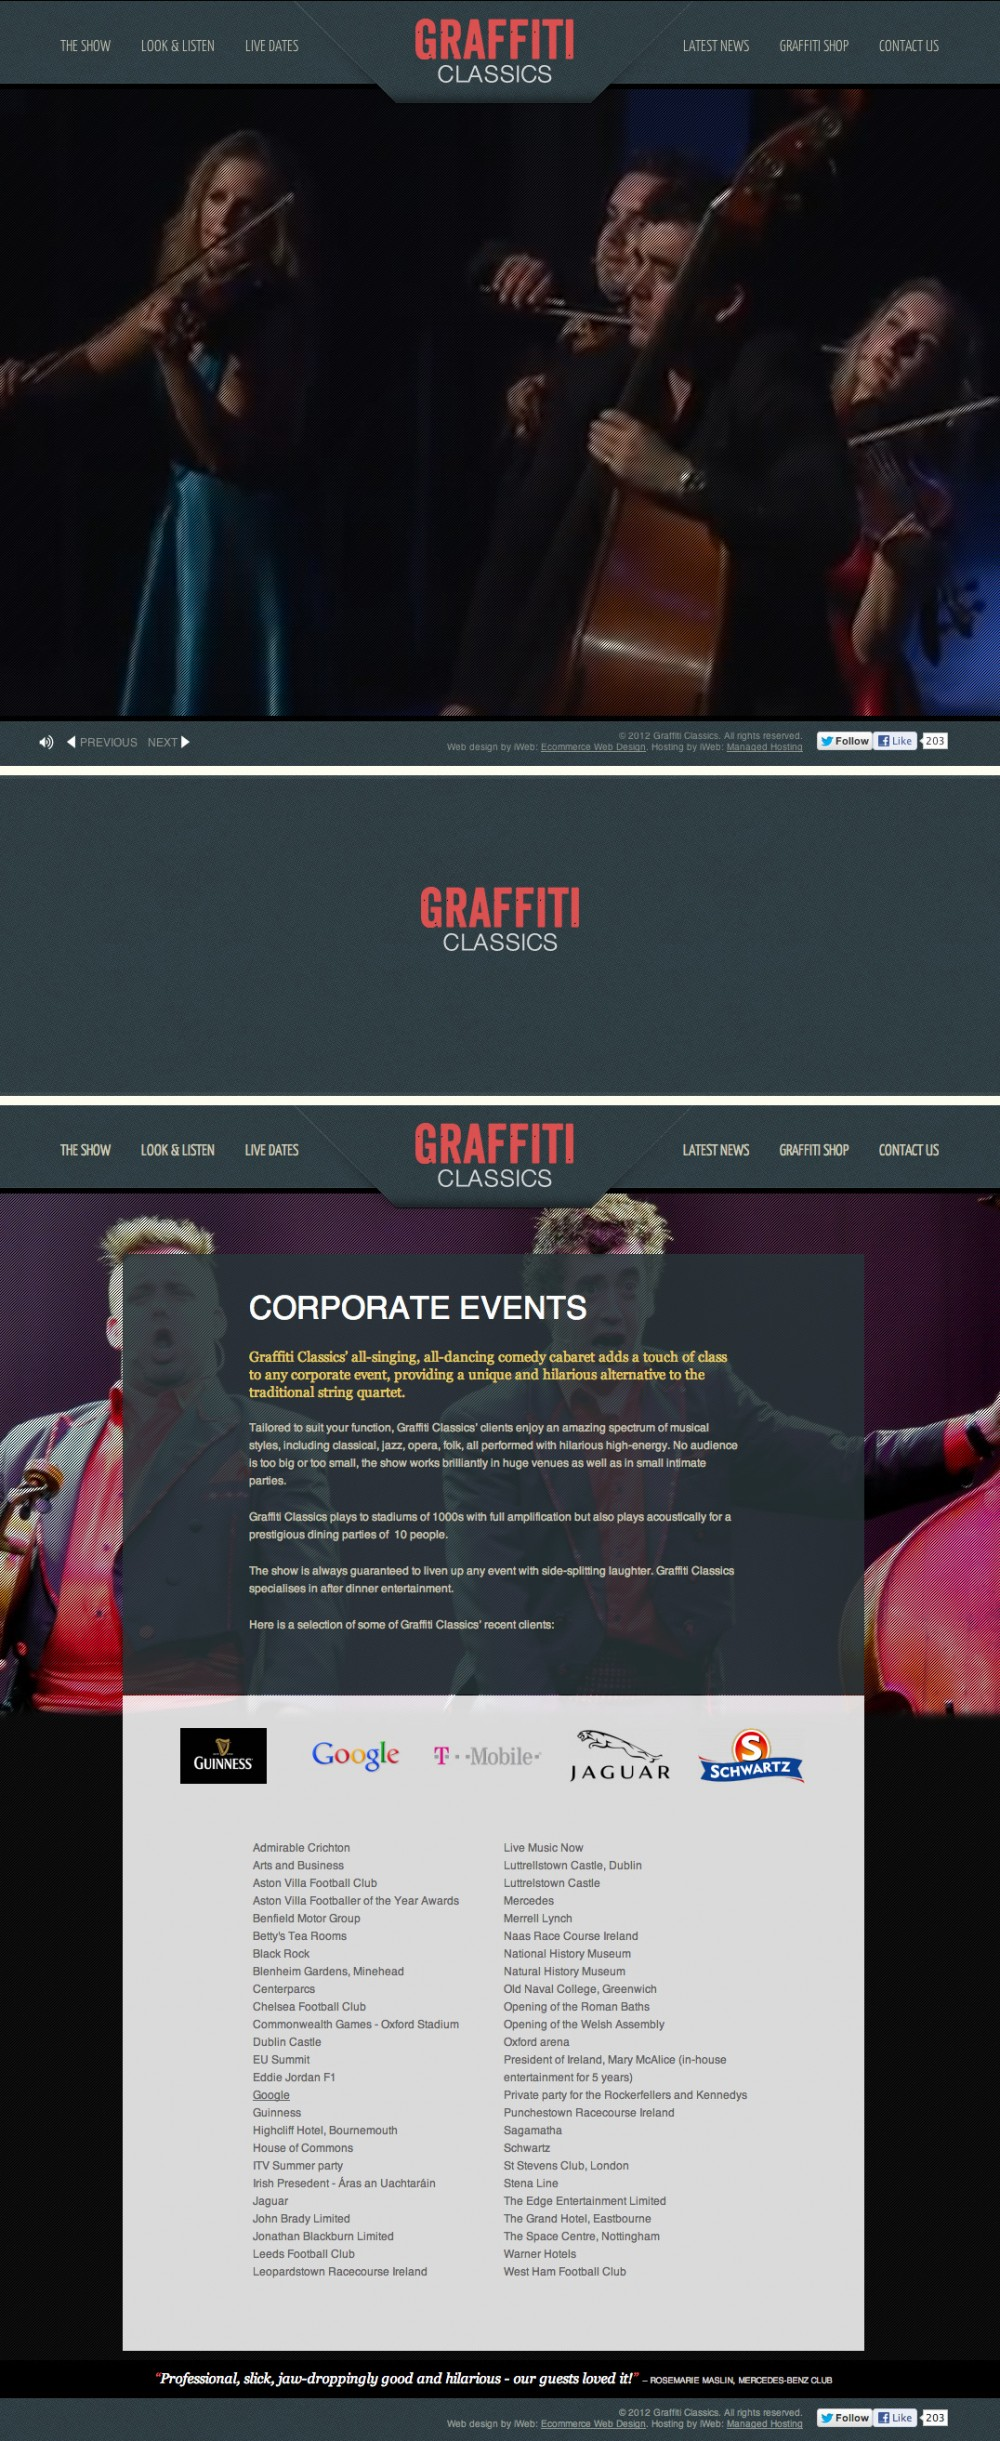 Unconventional classical music outfit inspires classic web design.